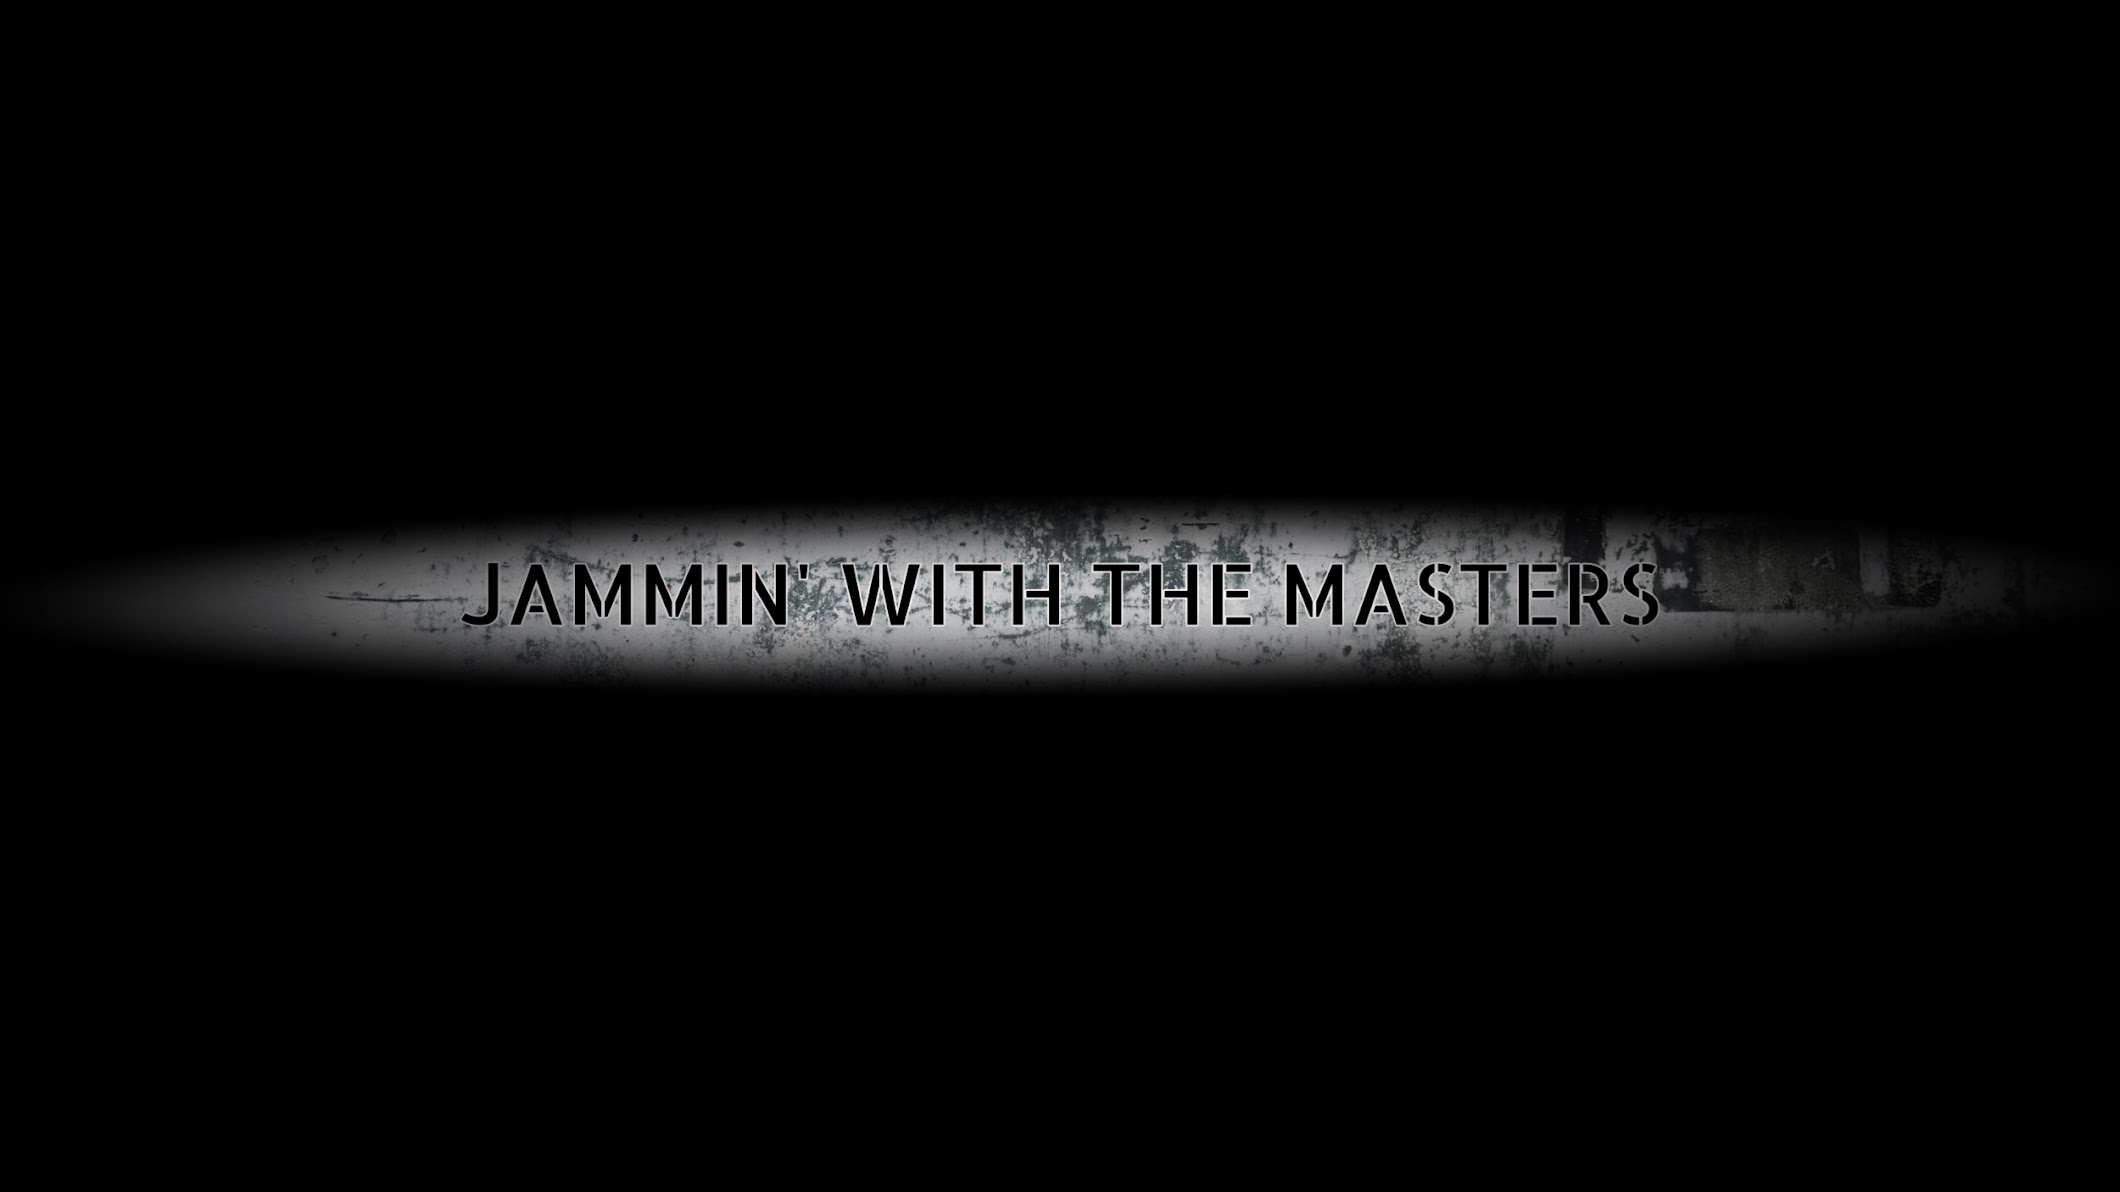 JAMMIN' WITH THE MASTERS